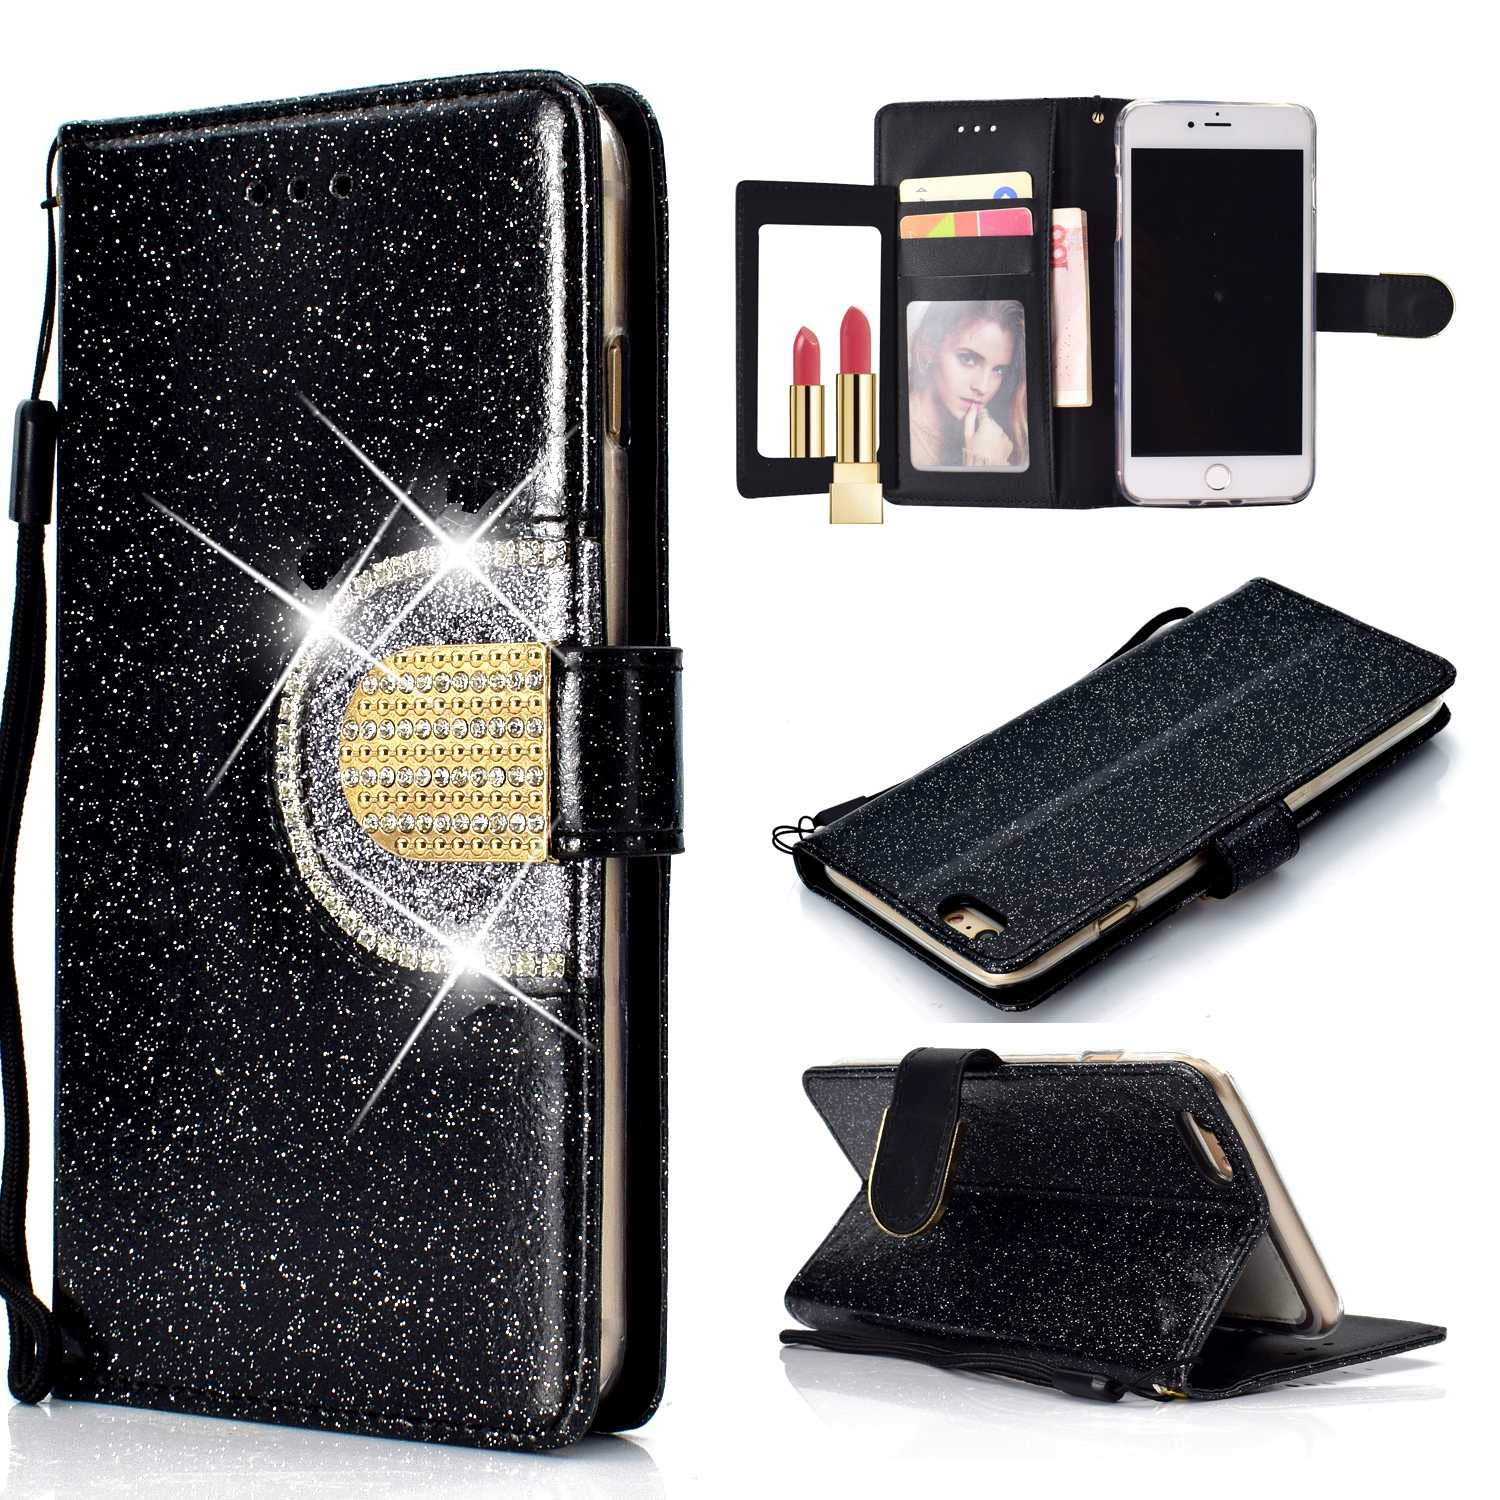 CUSKING Magnetic Wallet Case for Samsung Galaxy S6 with Card Slot and Detachable Hand Strap Book Style Case Full Body Protective Case Black